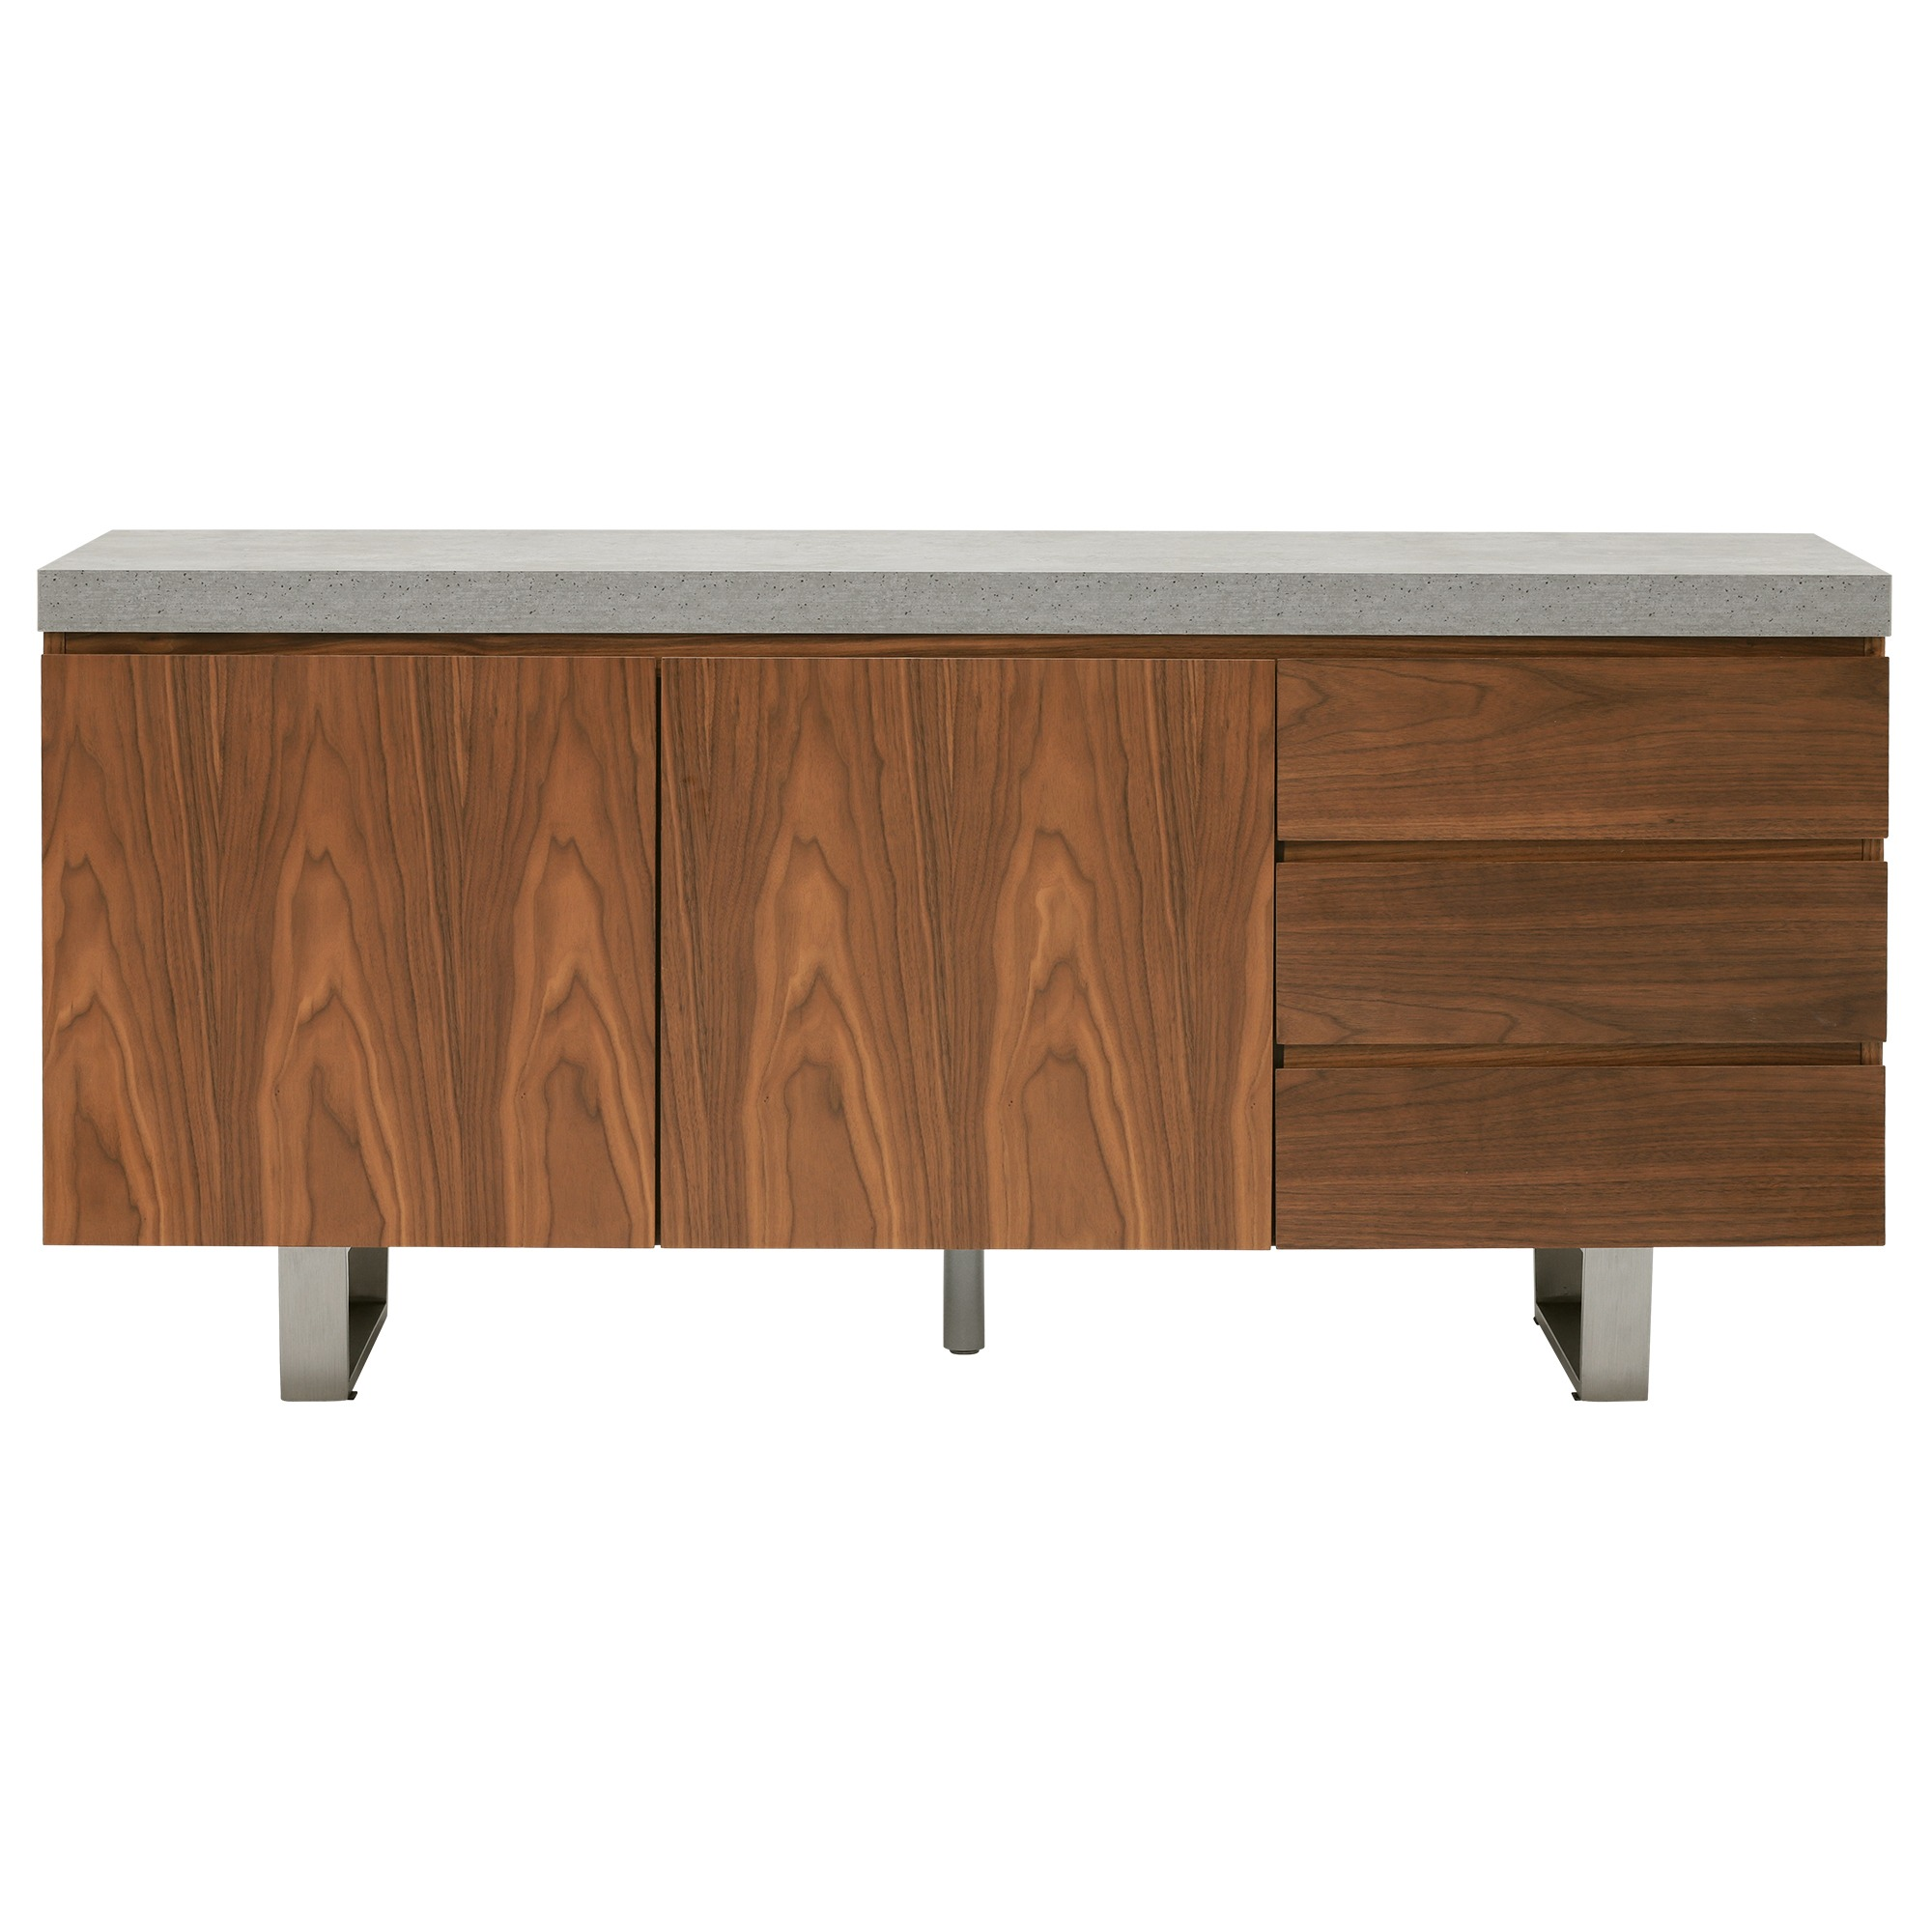 CONCRETE LOOK SIDEBOARD - FRONT DETAIL